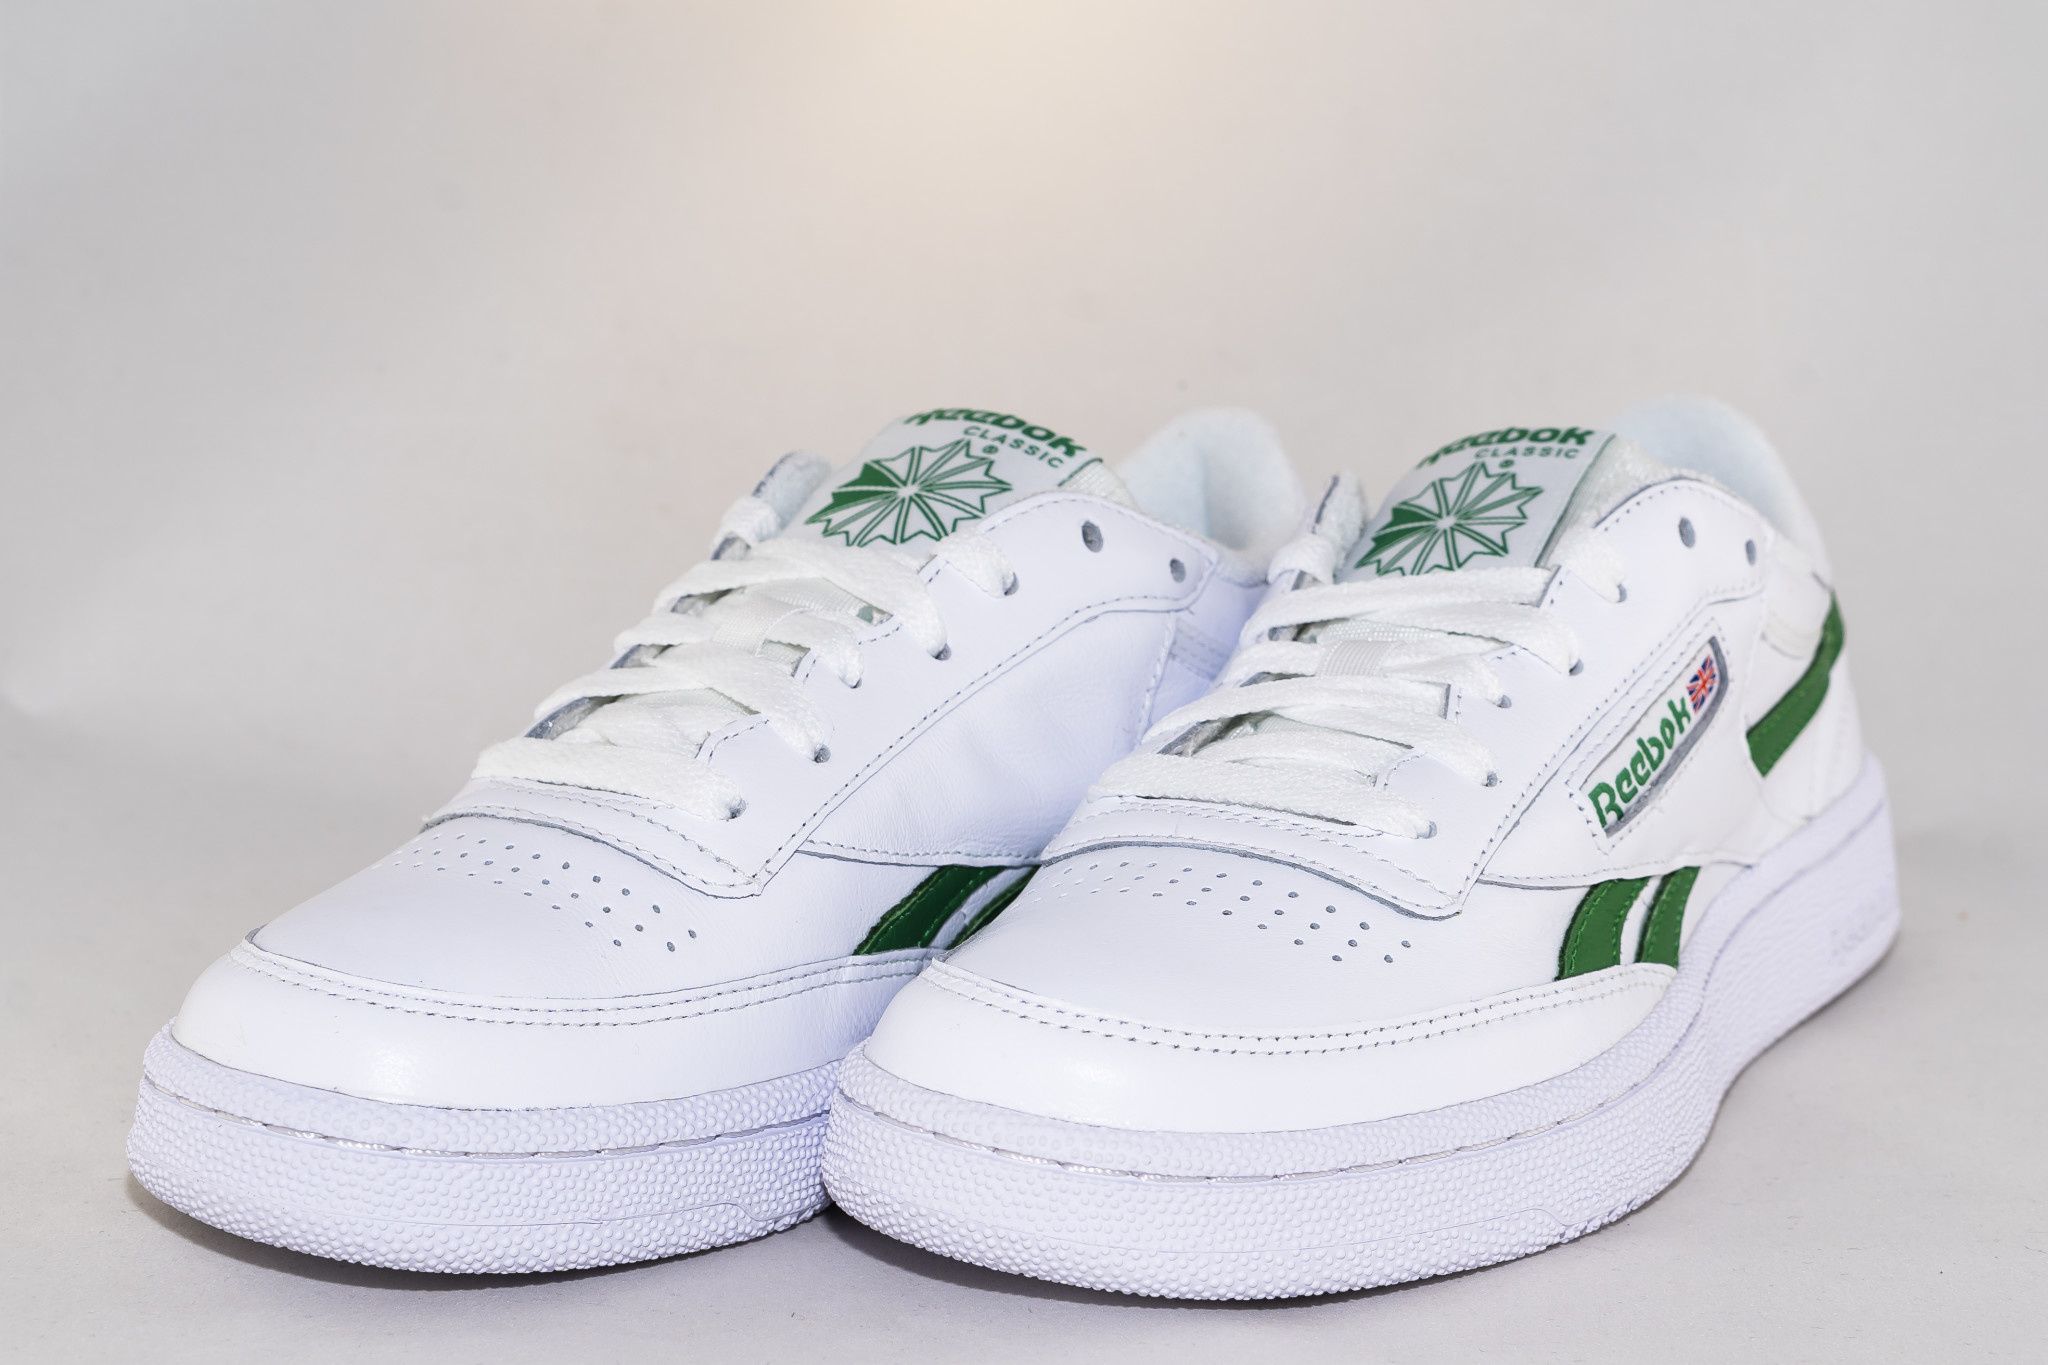 REEBOK REVENGE PLUS MU White/ Glegrn/ None